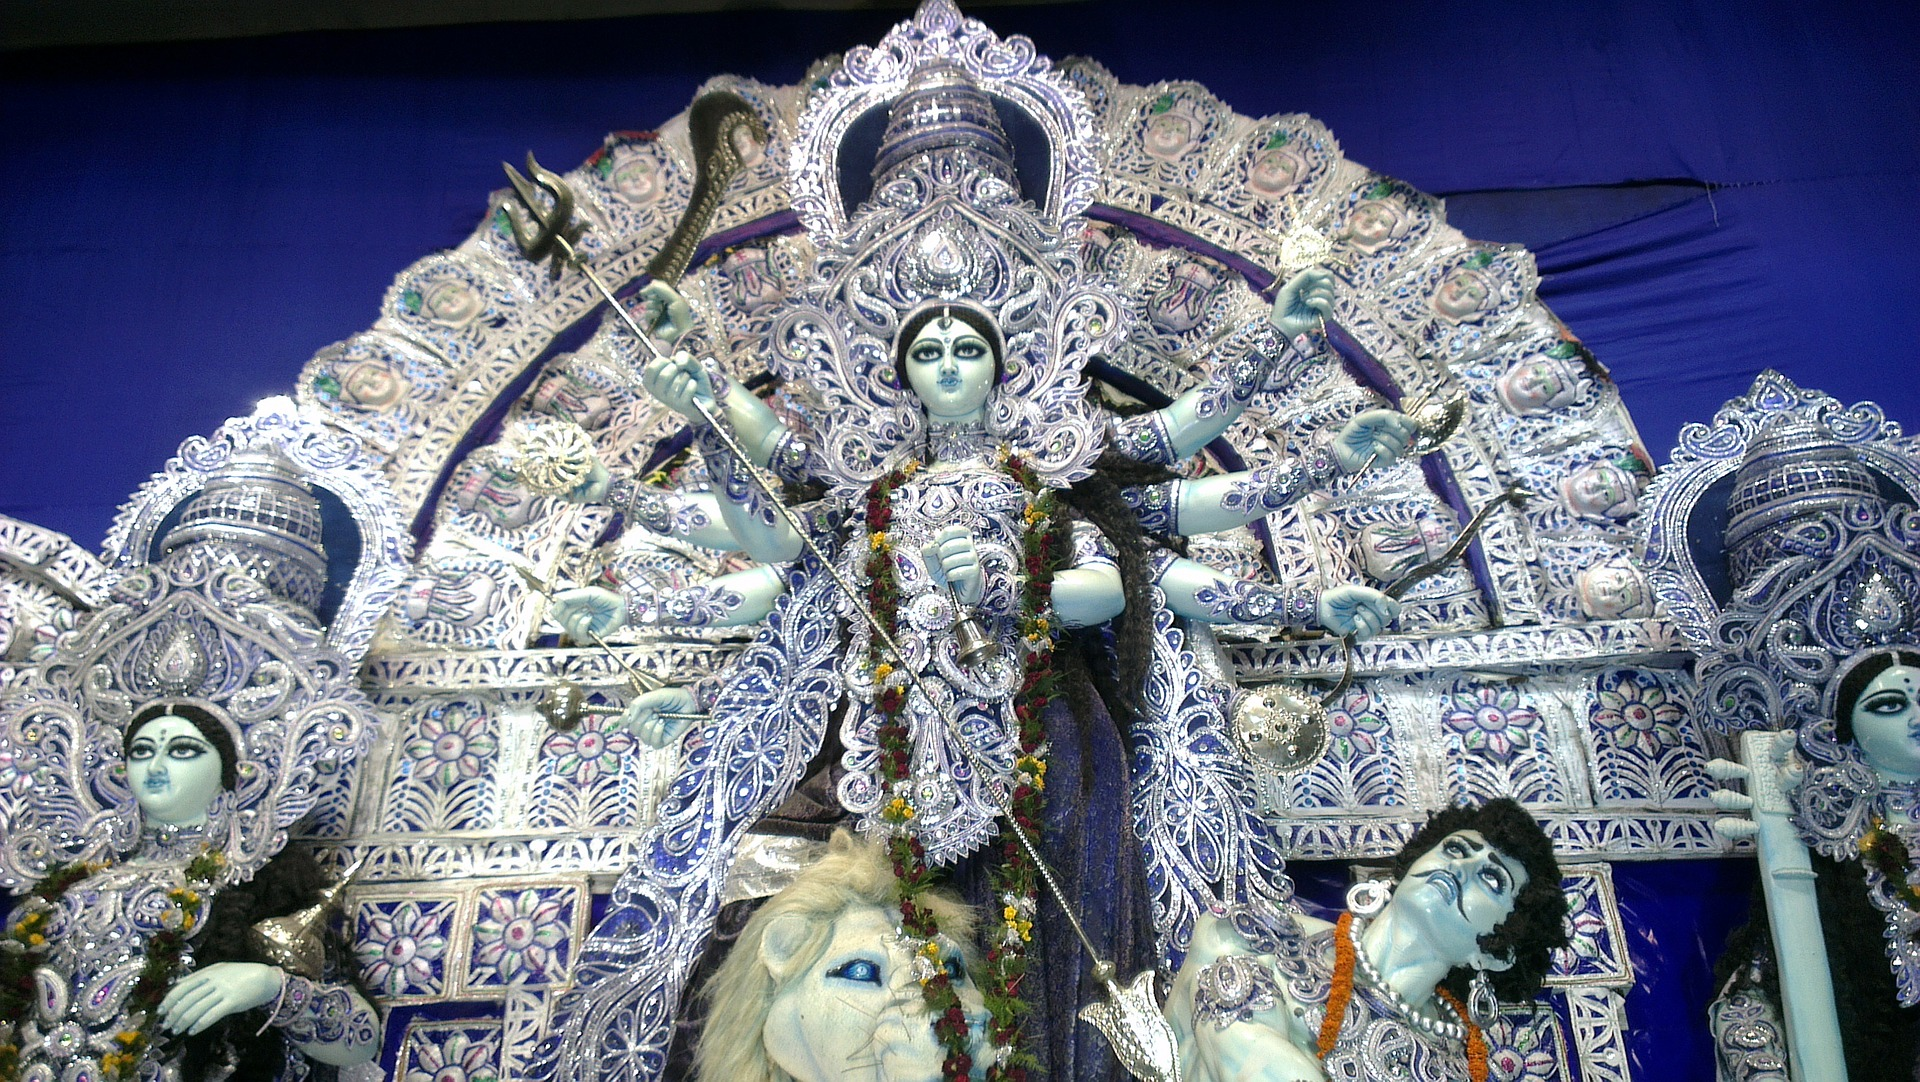 Whats The Story Behind The Hindu Goddess Durga?